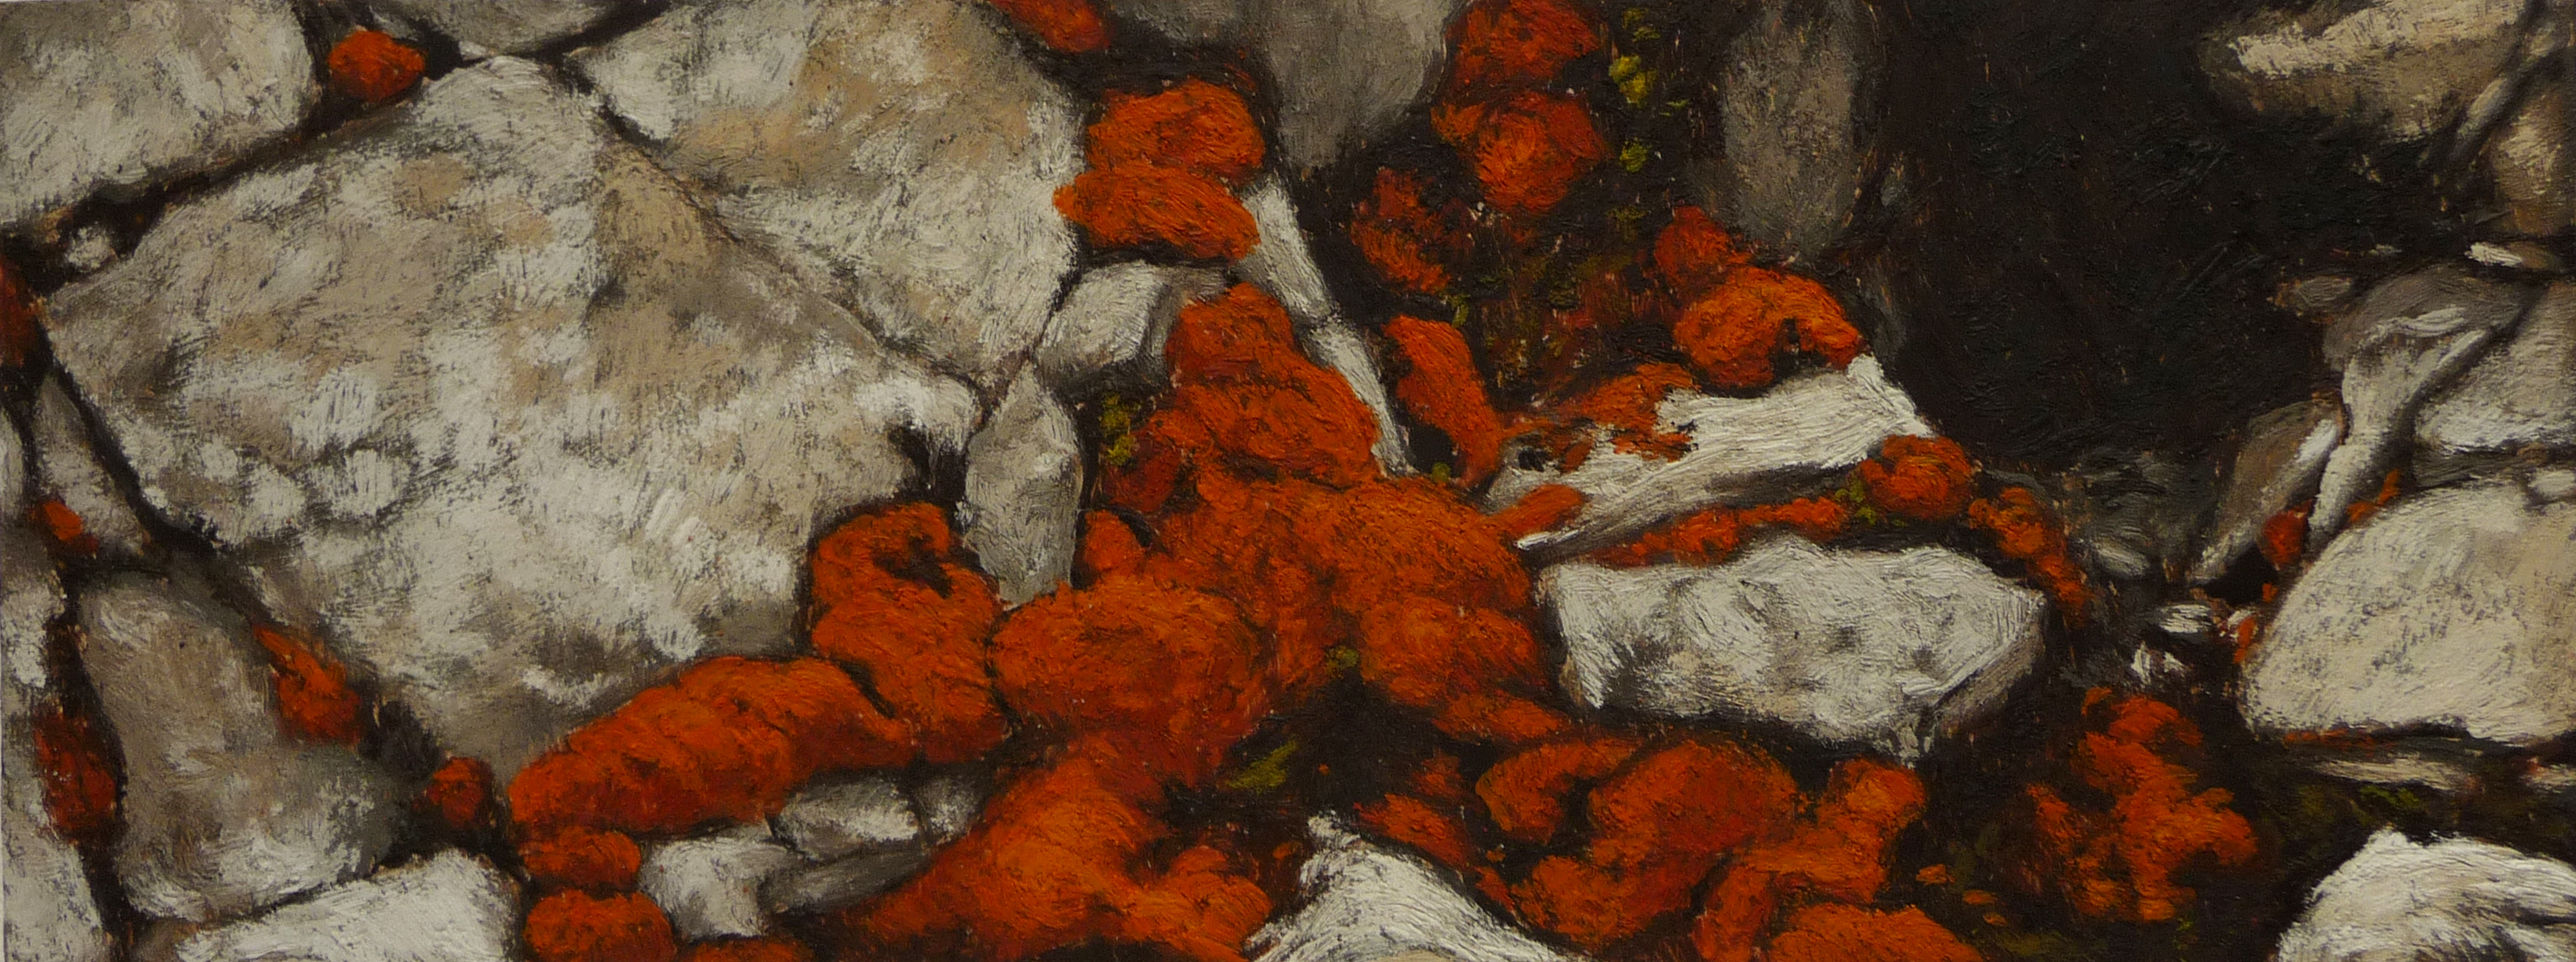 <p><strong>Orange moss  SOLD</strong><br />Encaustic on wood, 34 x 13 cm</p>